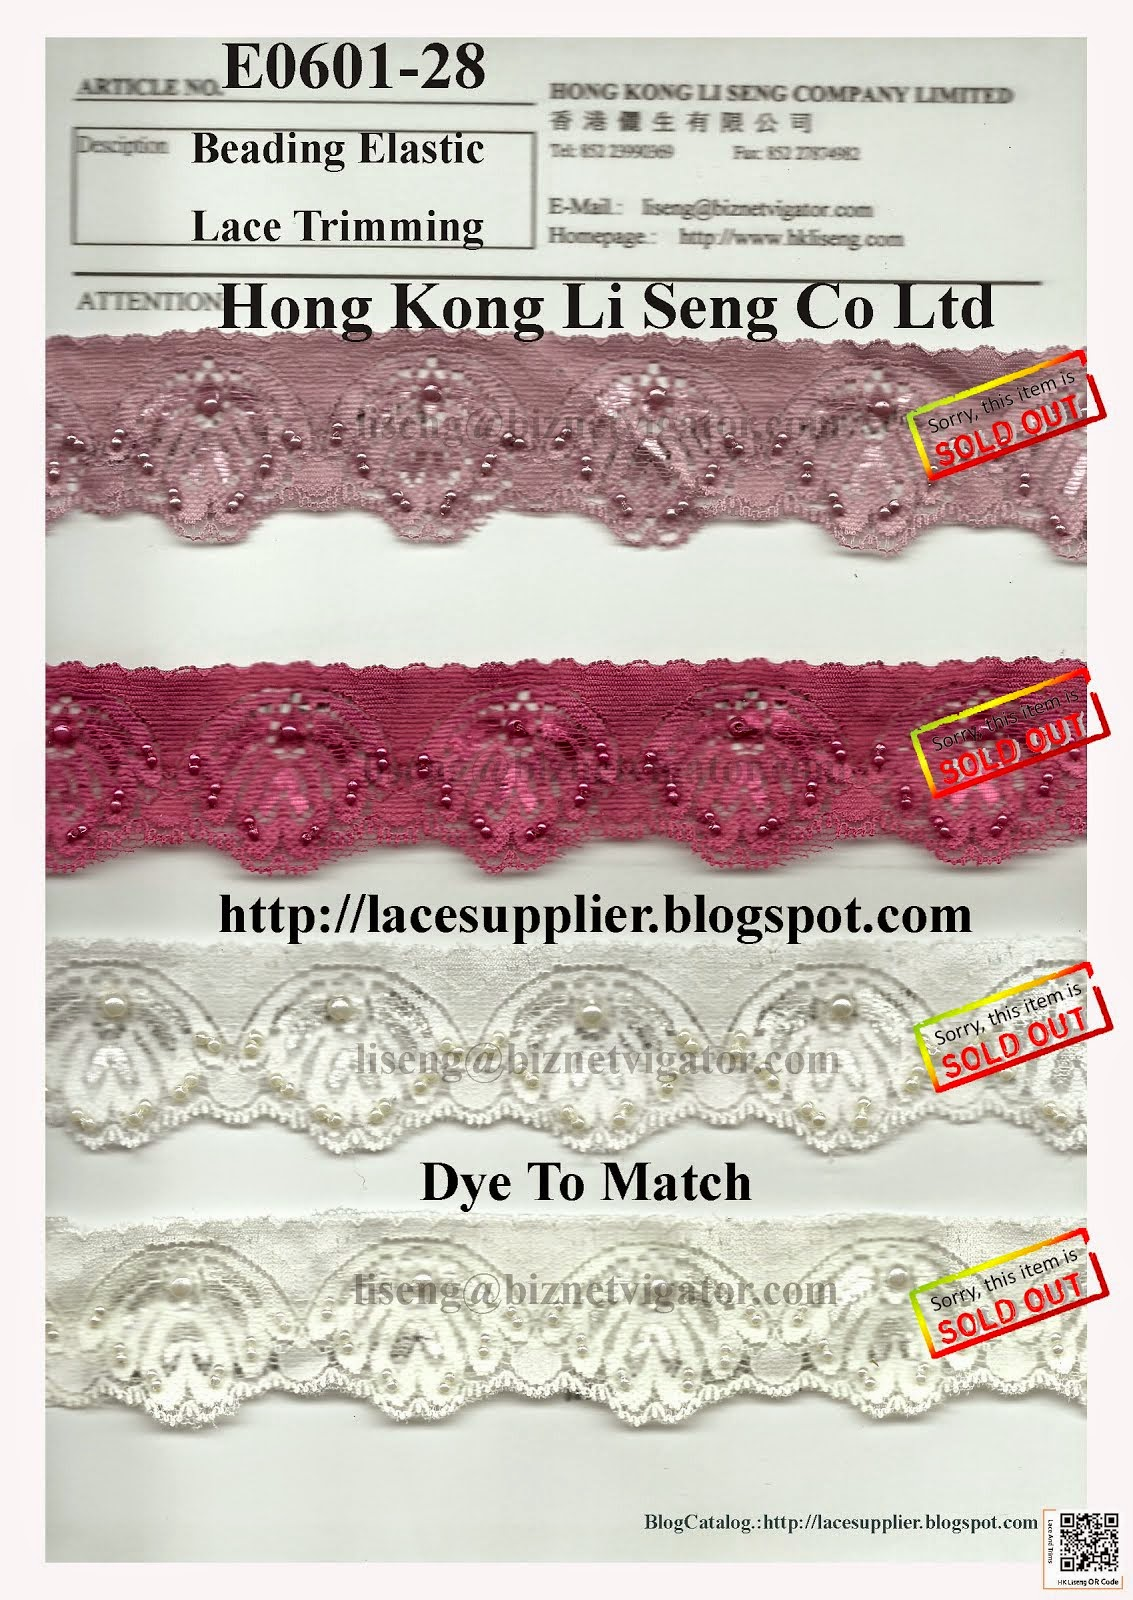 Beading Elastic Lace Trimming Manufacturer Wholesaler and Supplier